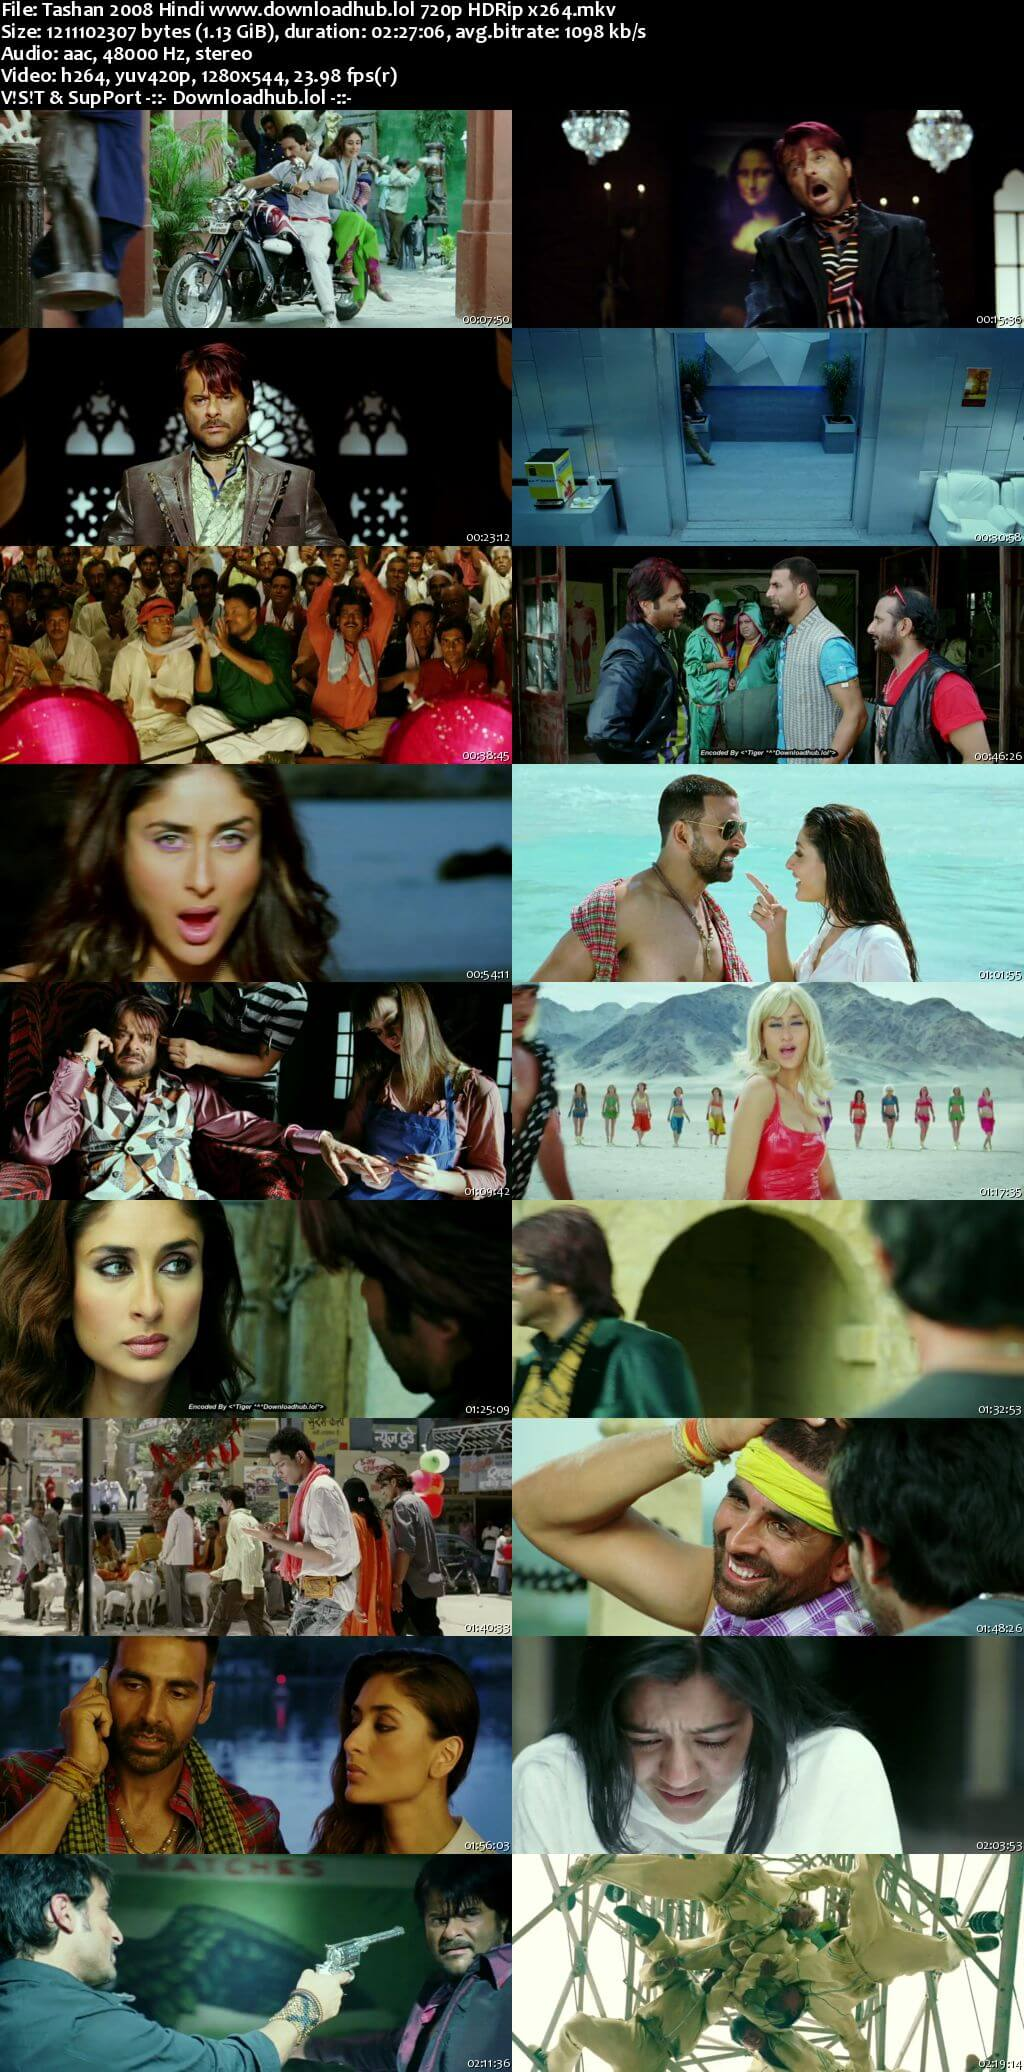 Tashan 2008 Hindi 720p HDRip x264